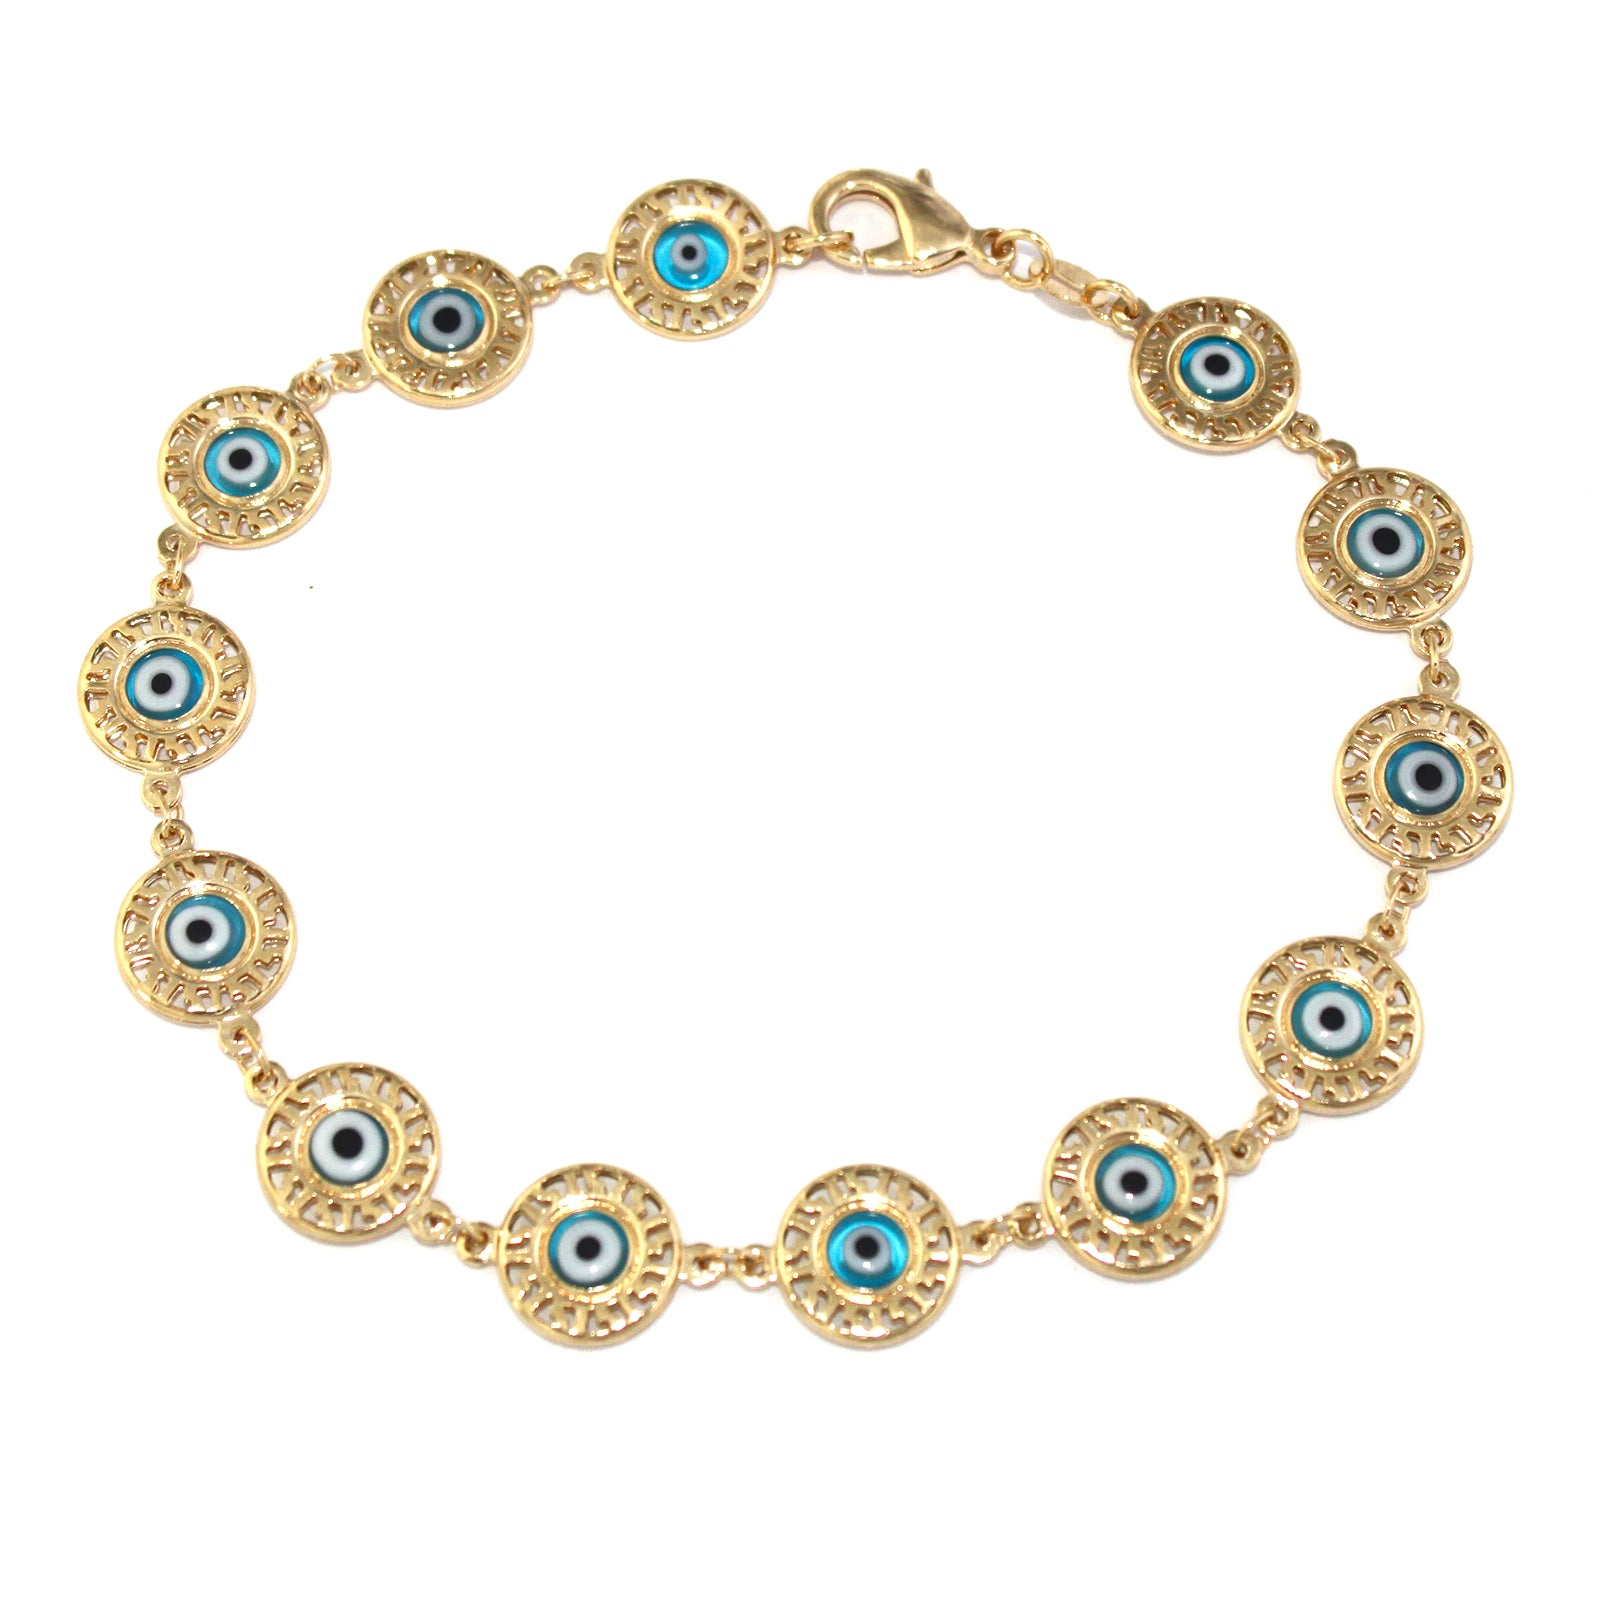 sterling blue bracelet wh evileye az color bling multi midnight jewelry blr mati you inch on silver evil eye taslisman